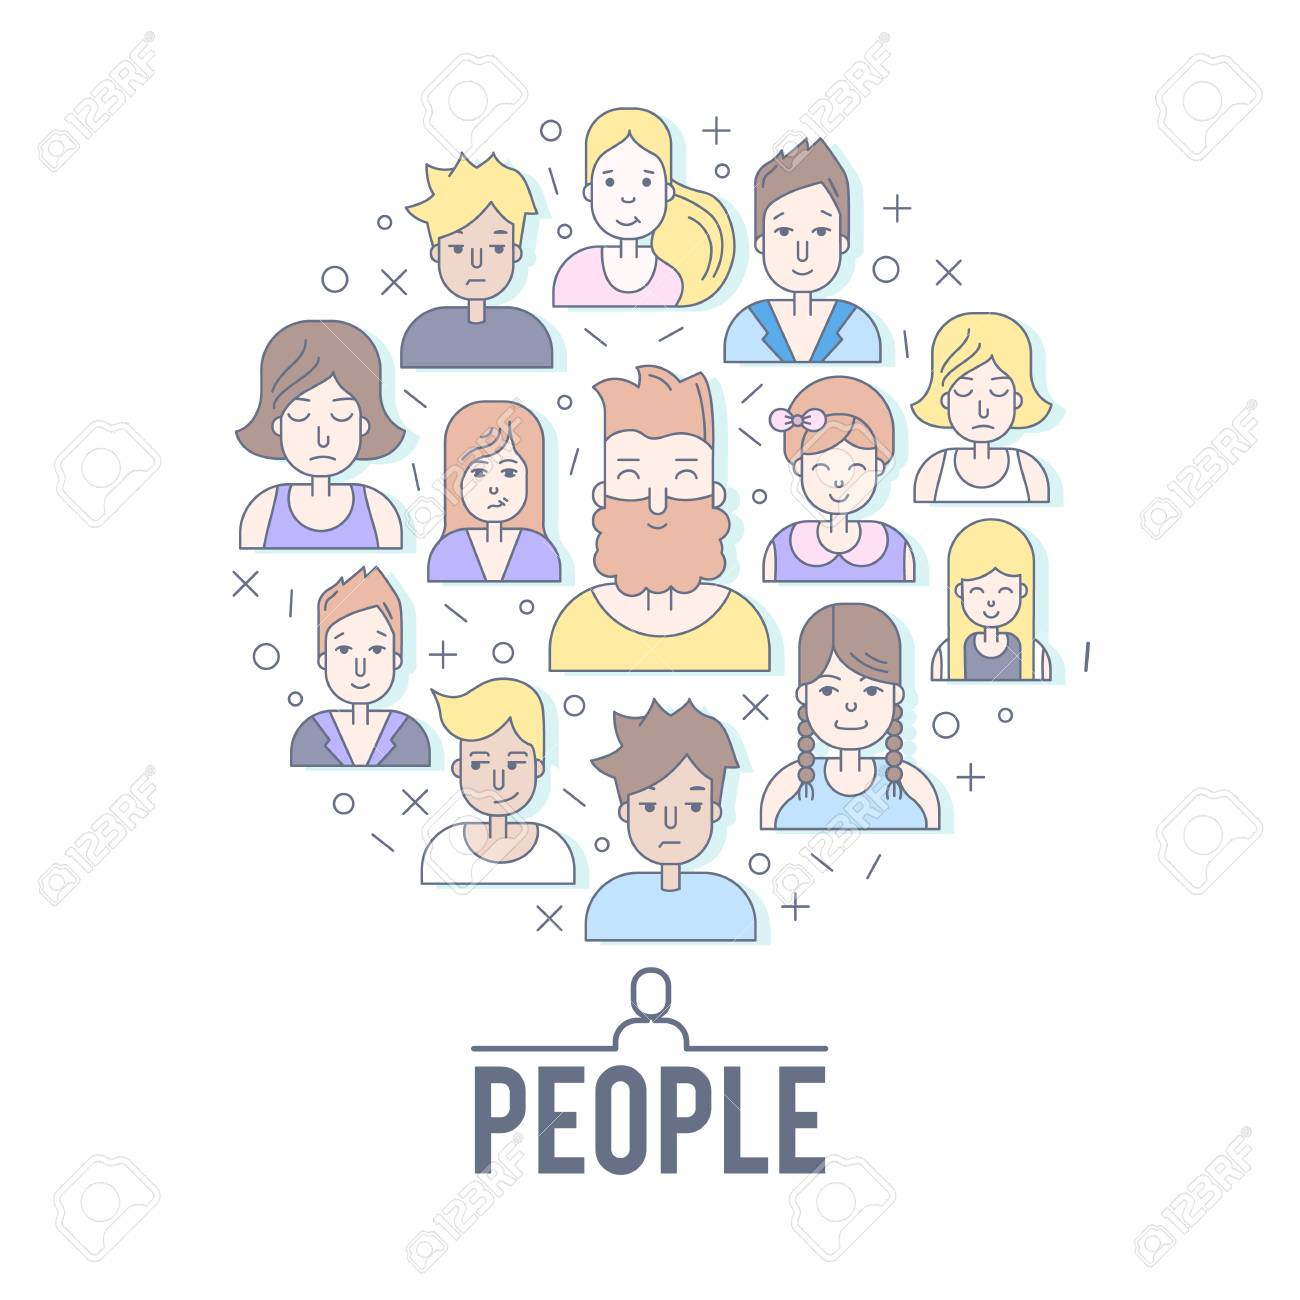 Linear Flat people faces vector illustration. - 72954197